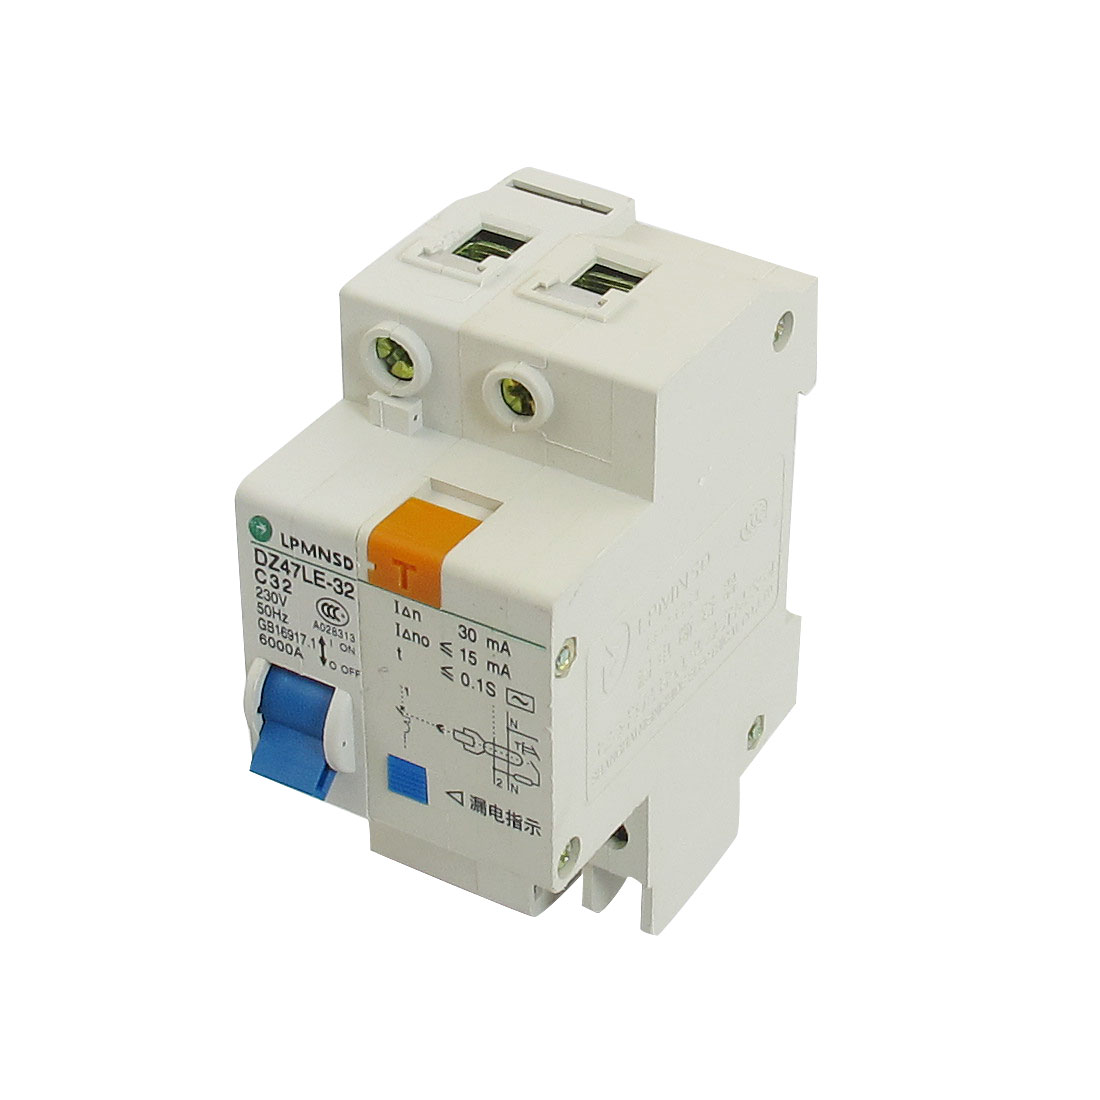 DIN Dail 1P Overload Proetction Circuit Breaker 230VAC 32A 6000A DZ47LE-32